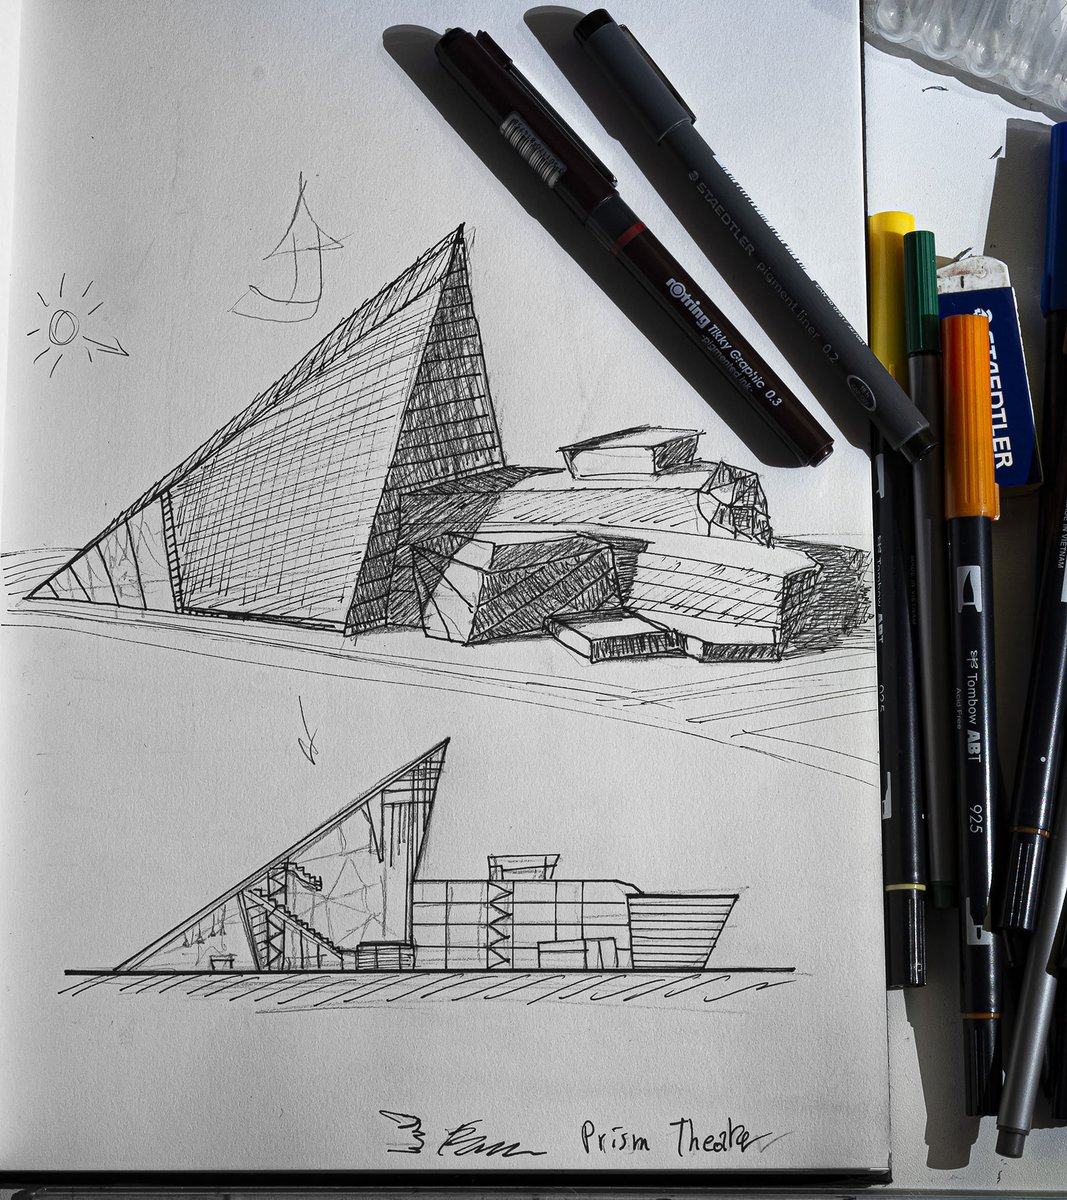 Architecture and urbanism drawing at 6am (I don't know if it look like a real drawing)  #art #architecture pic.twitter.com/Iyc3G2WLvk